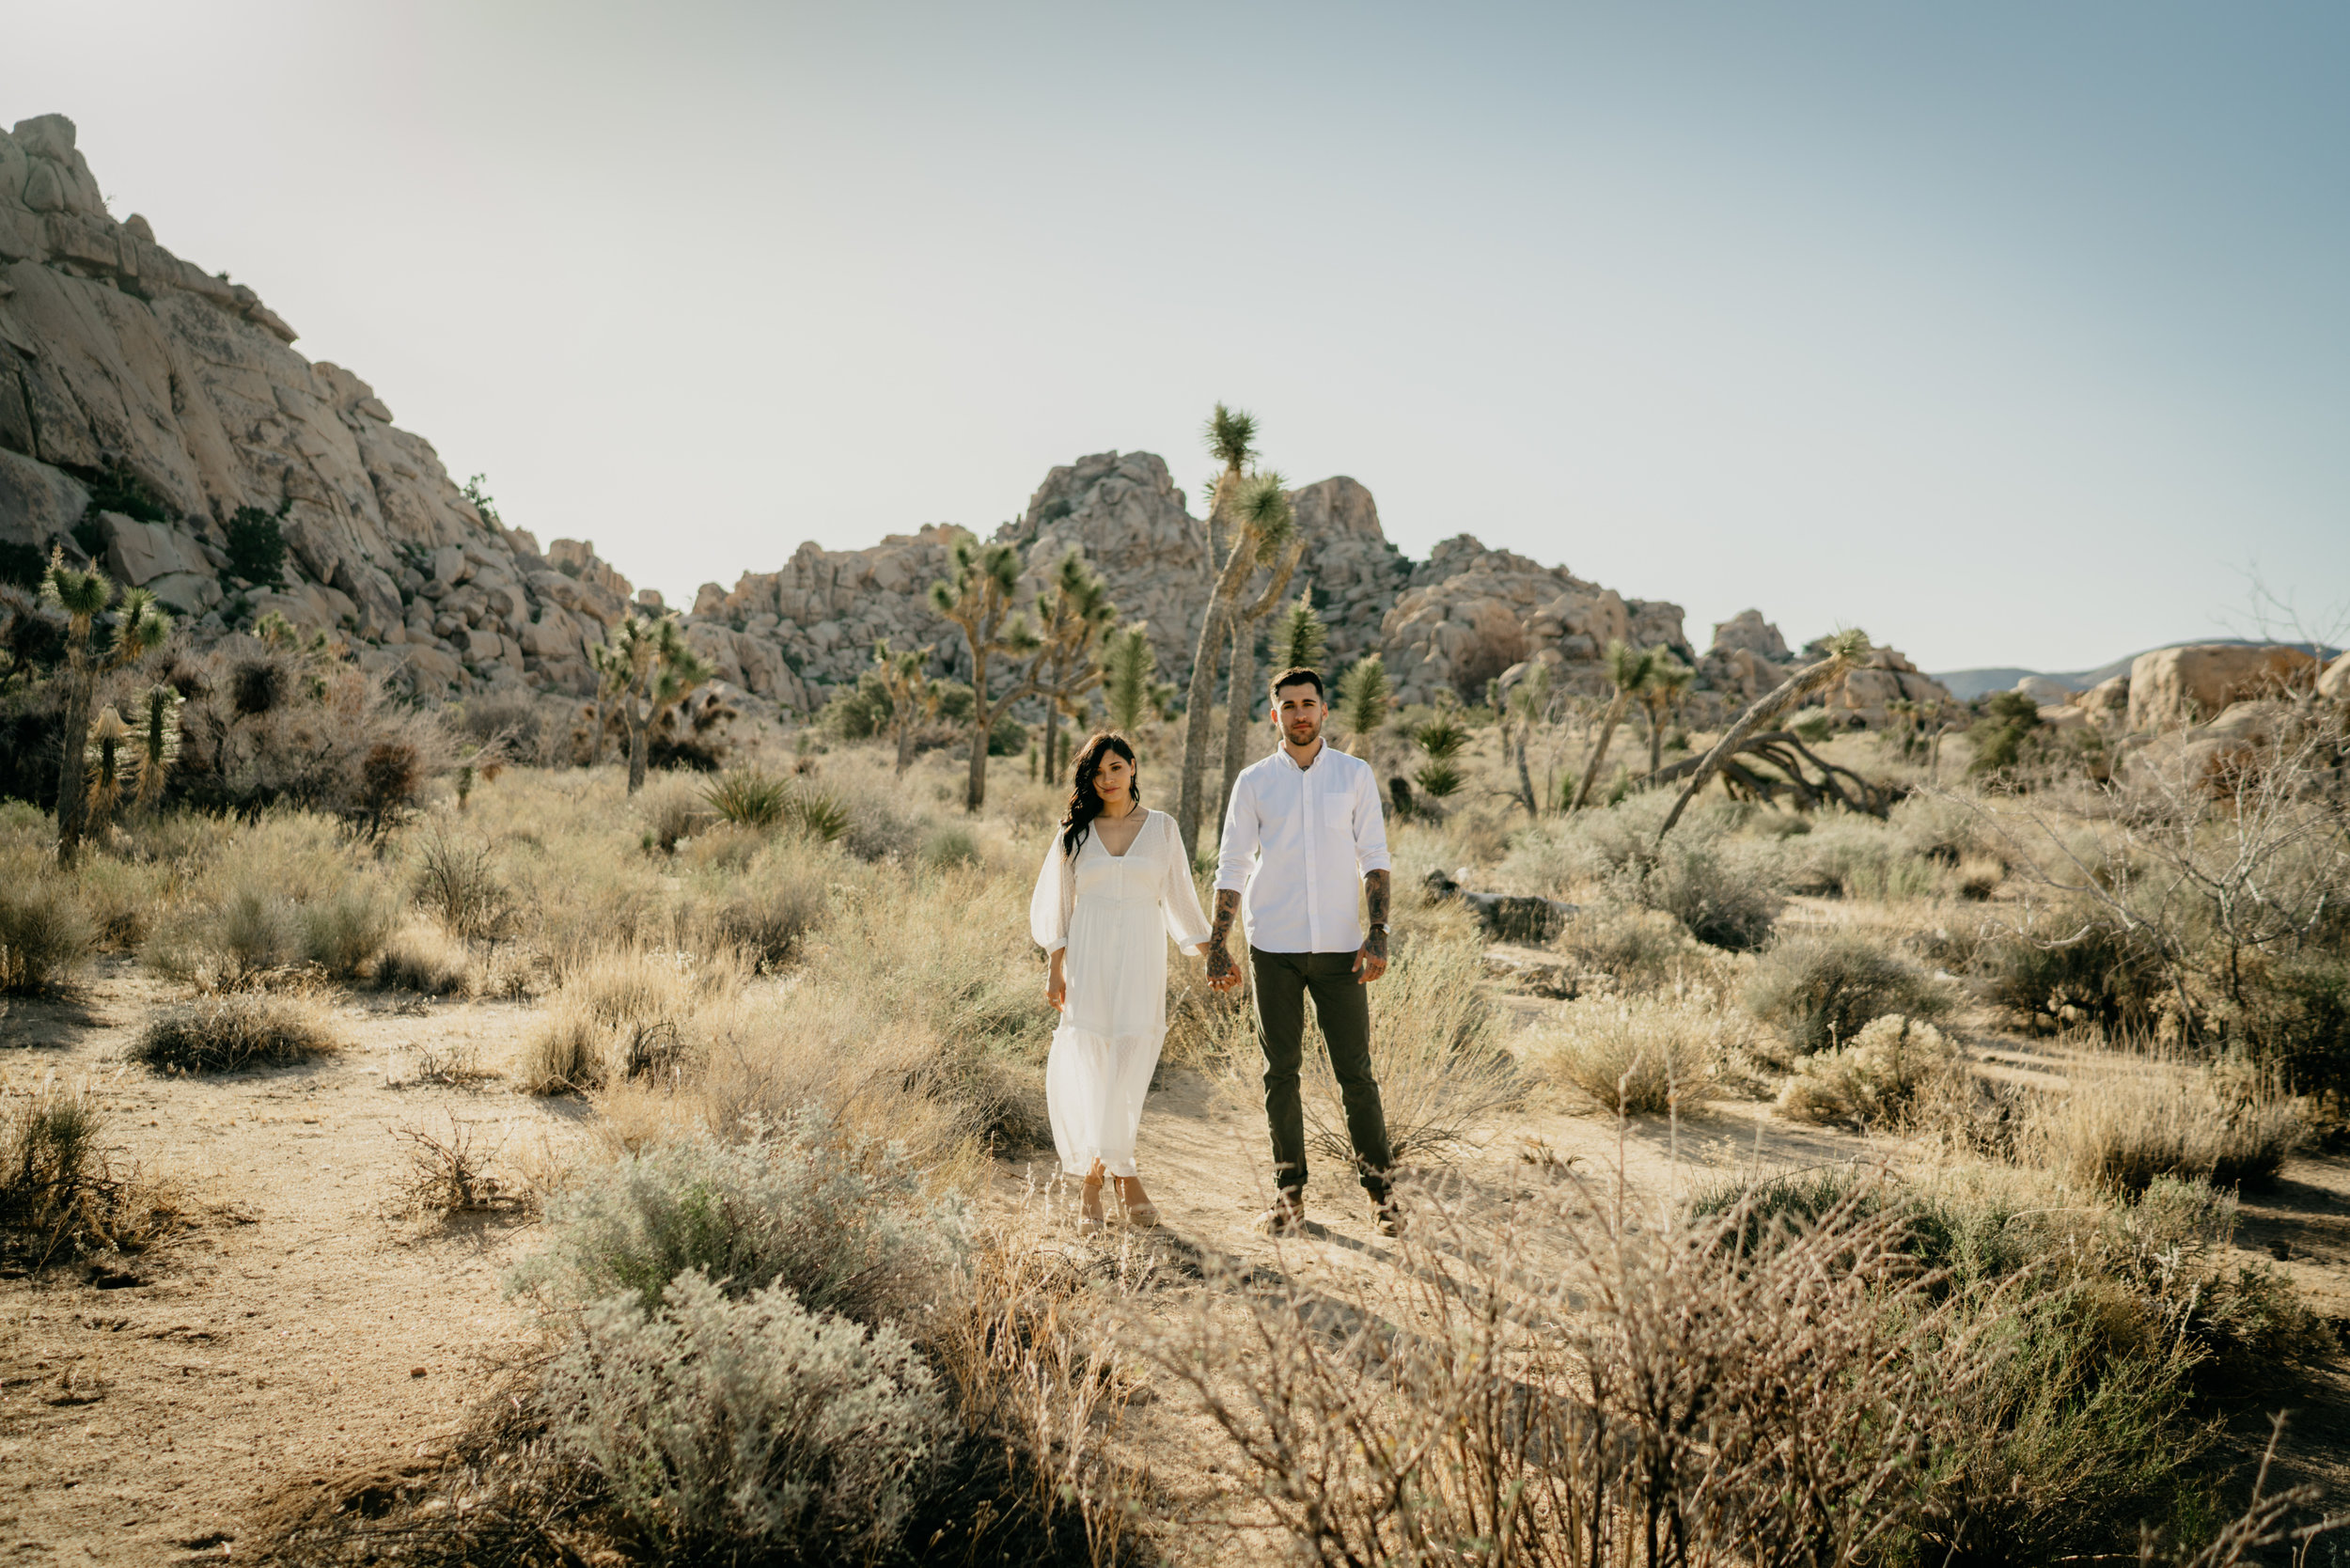 daisy-hunter-engagement-joshuatree-franciscoegonzalez-photos-57.jpg